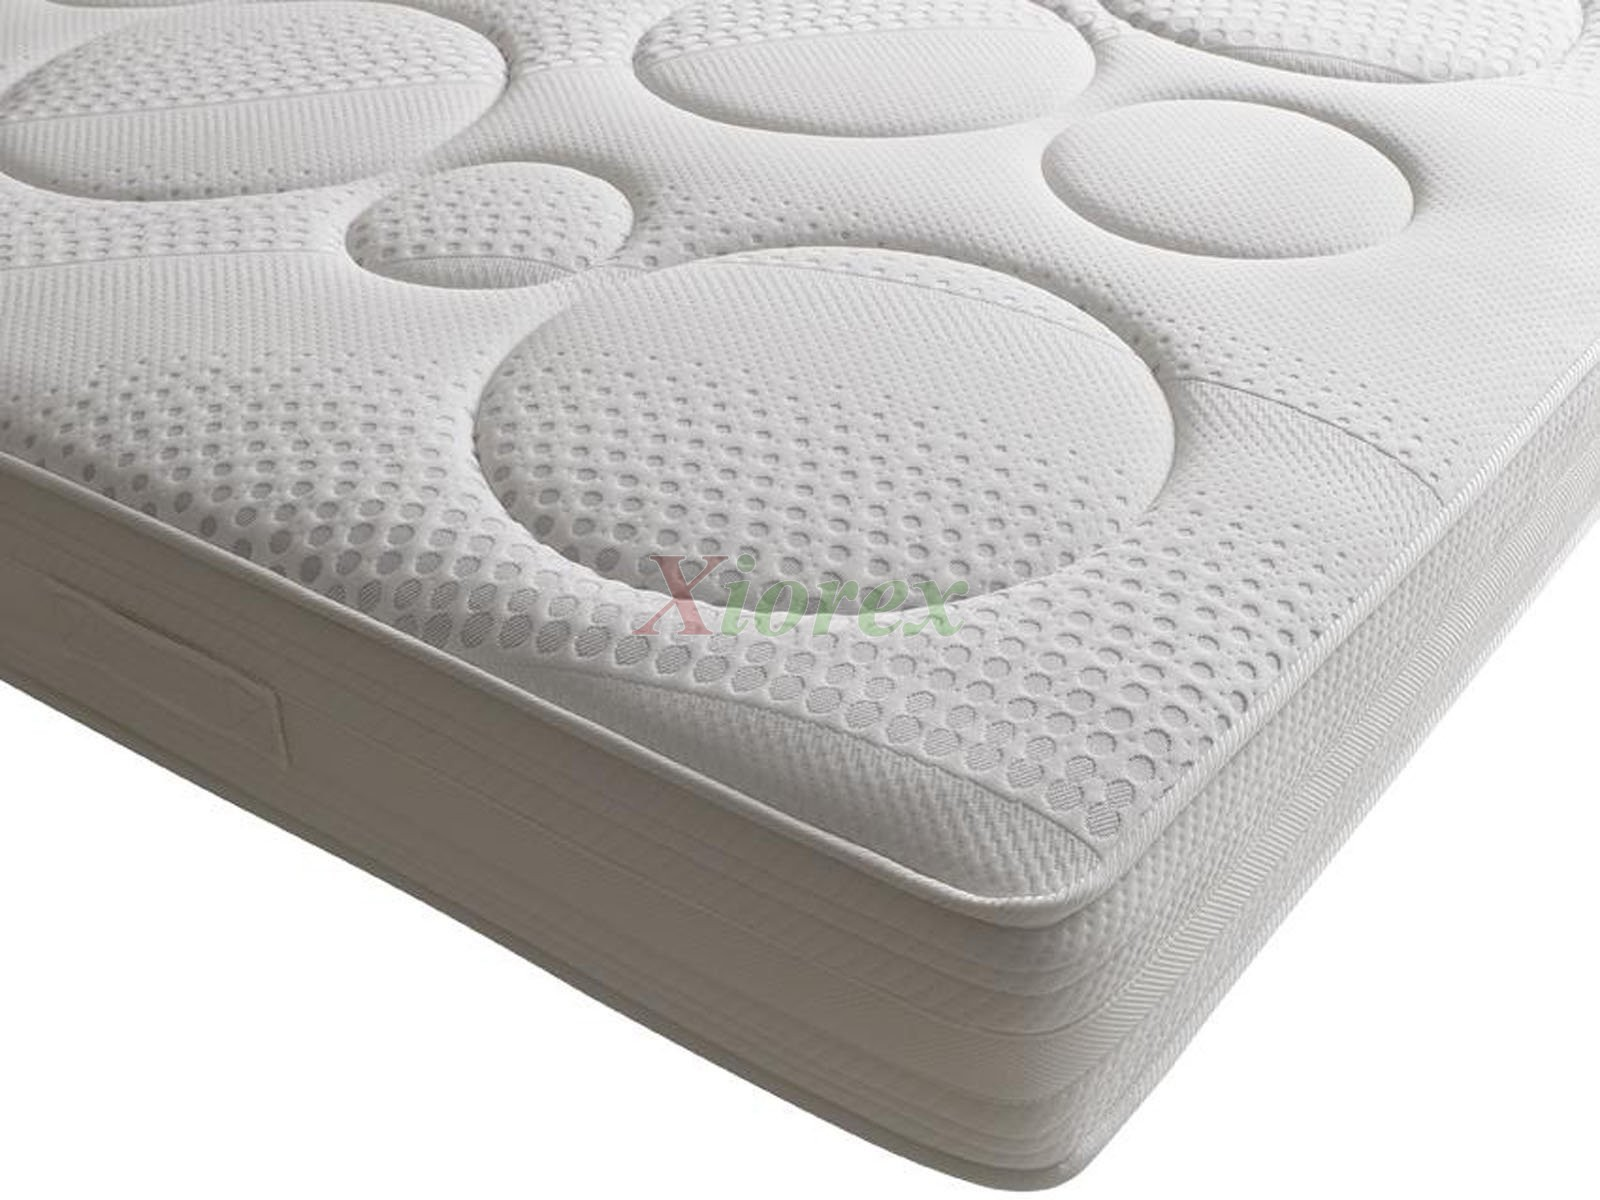 Neptune memory foam mattress soy foam mattress by gautier xiorex Where to buy mattress foam